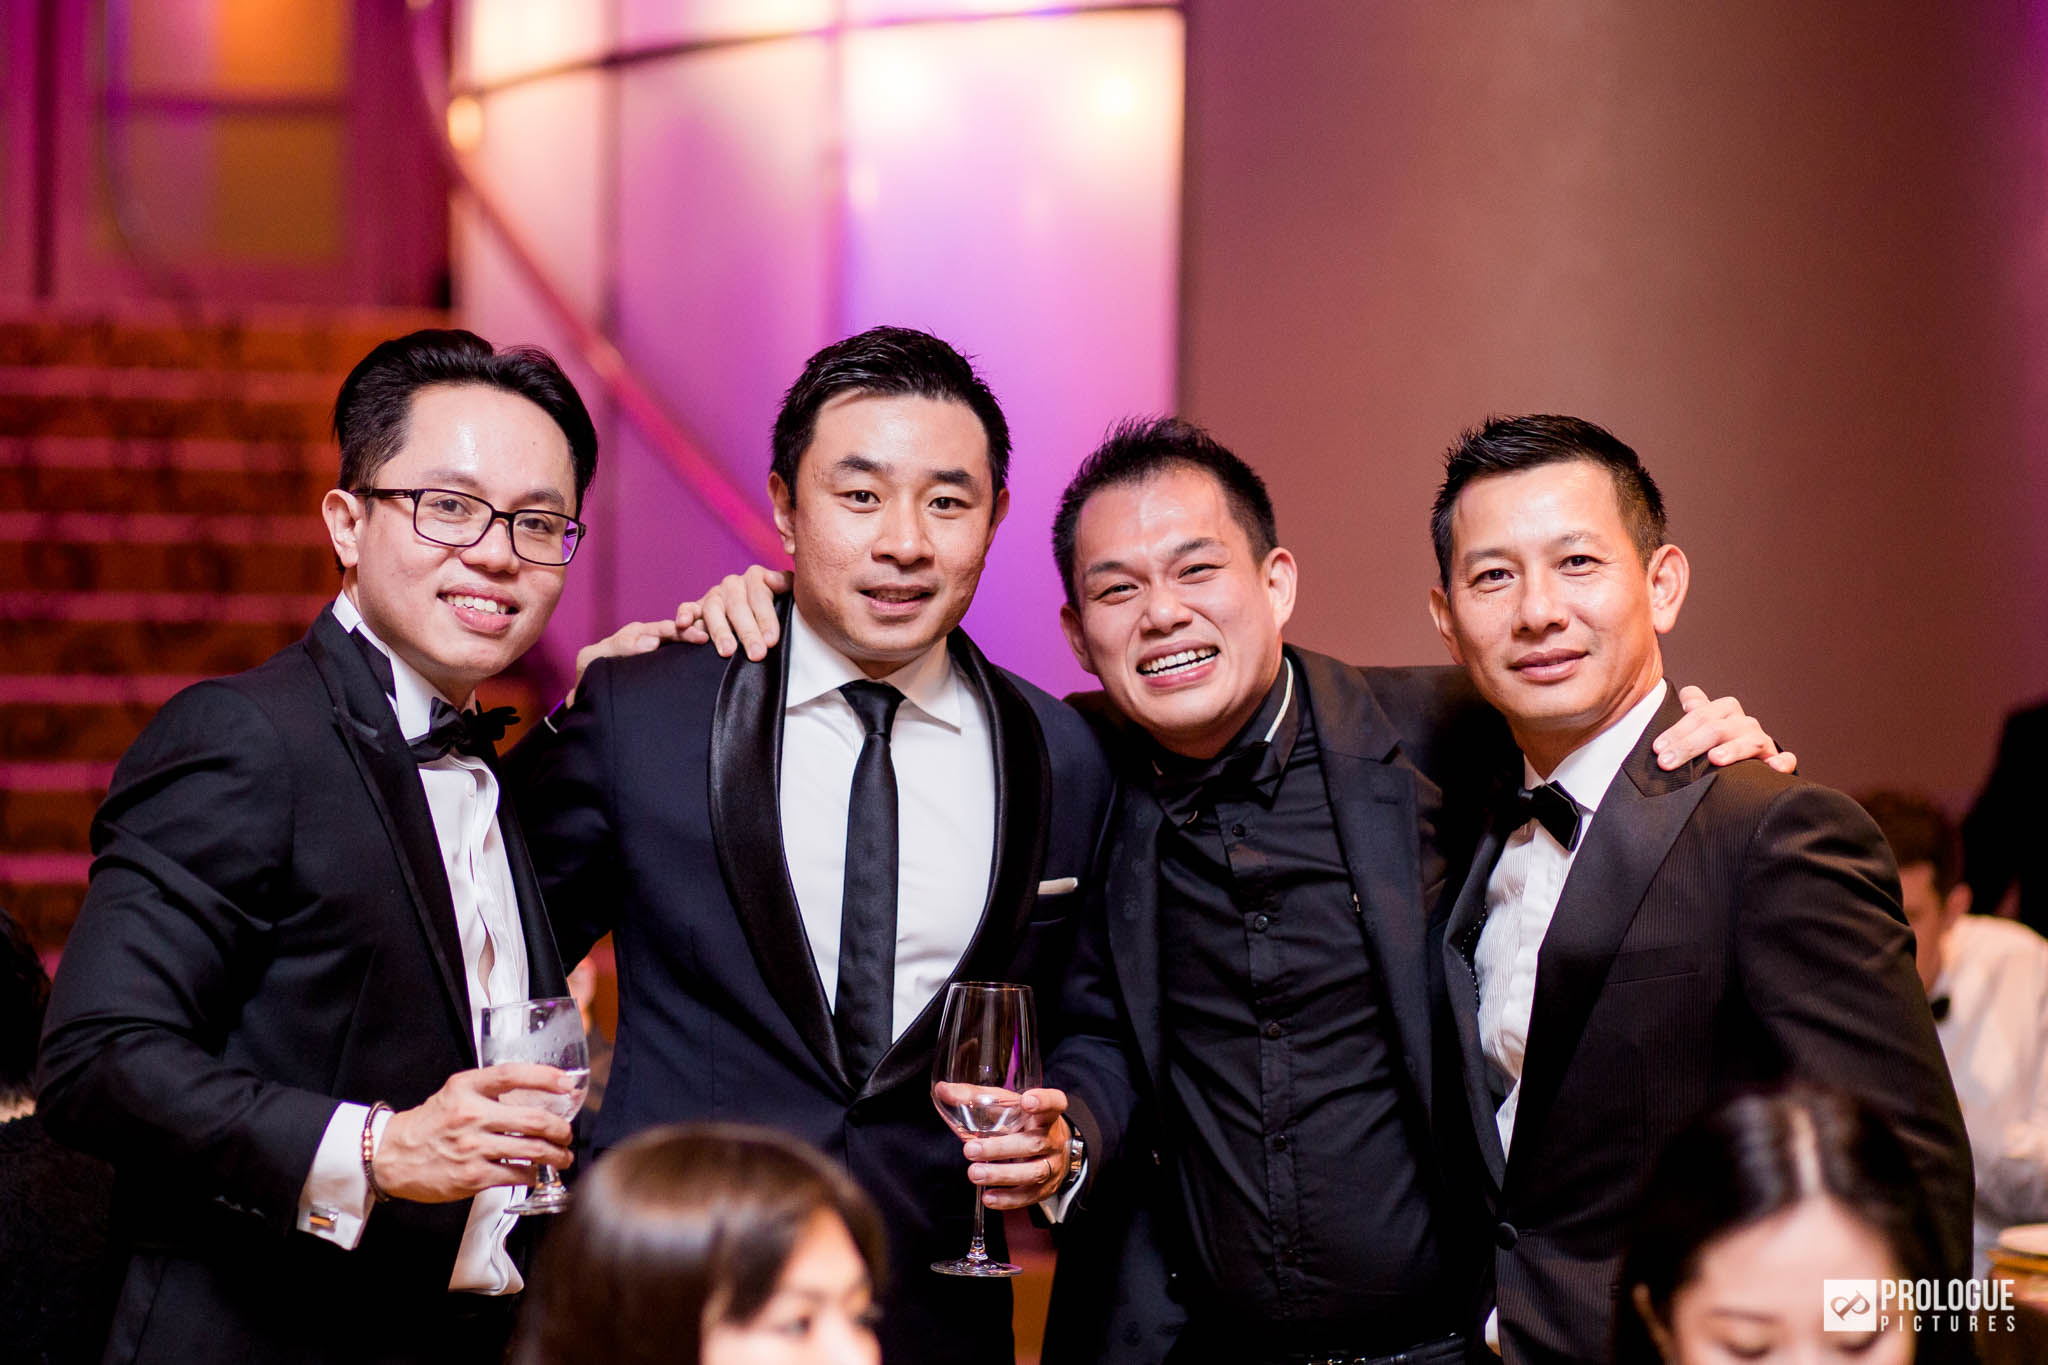 mouawad-125th-anniversary-event-photography-singapore-prologue-pictures-25